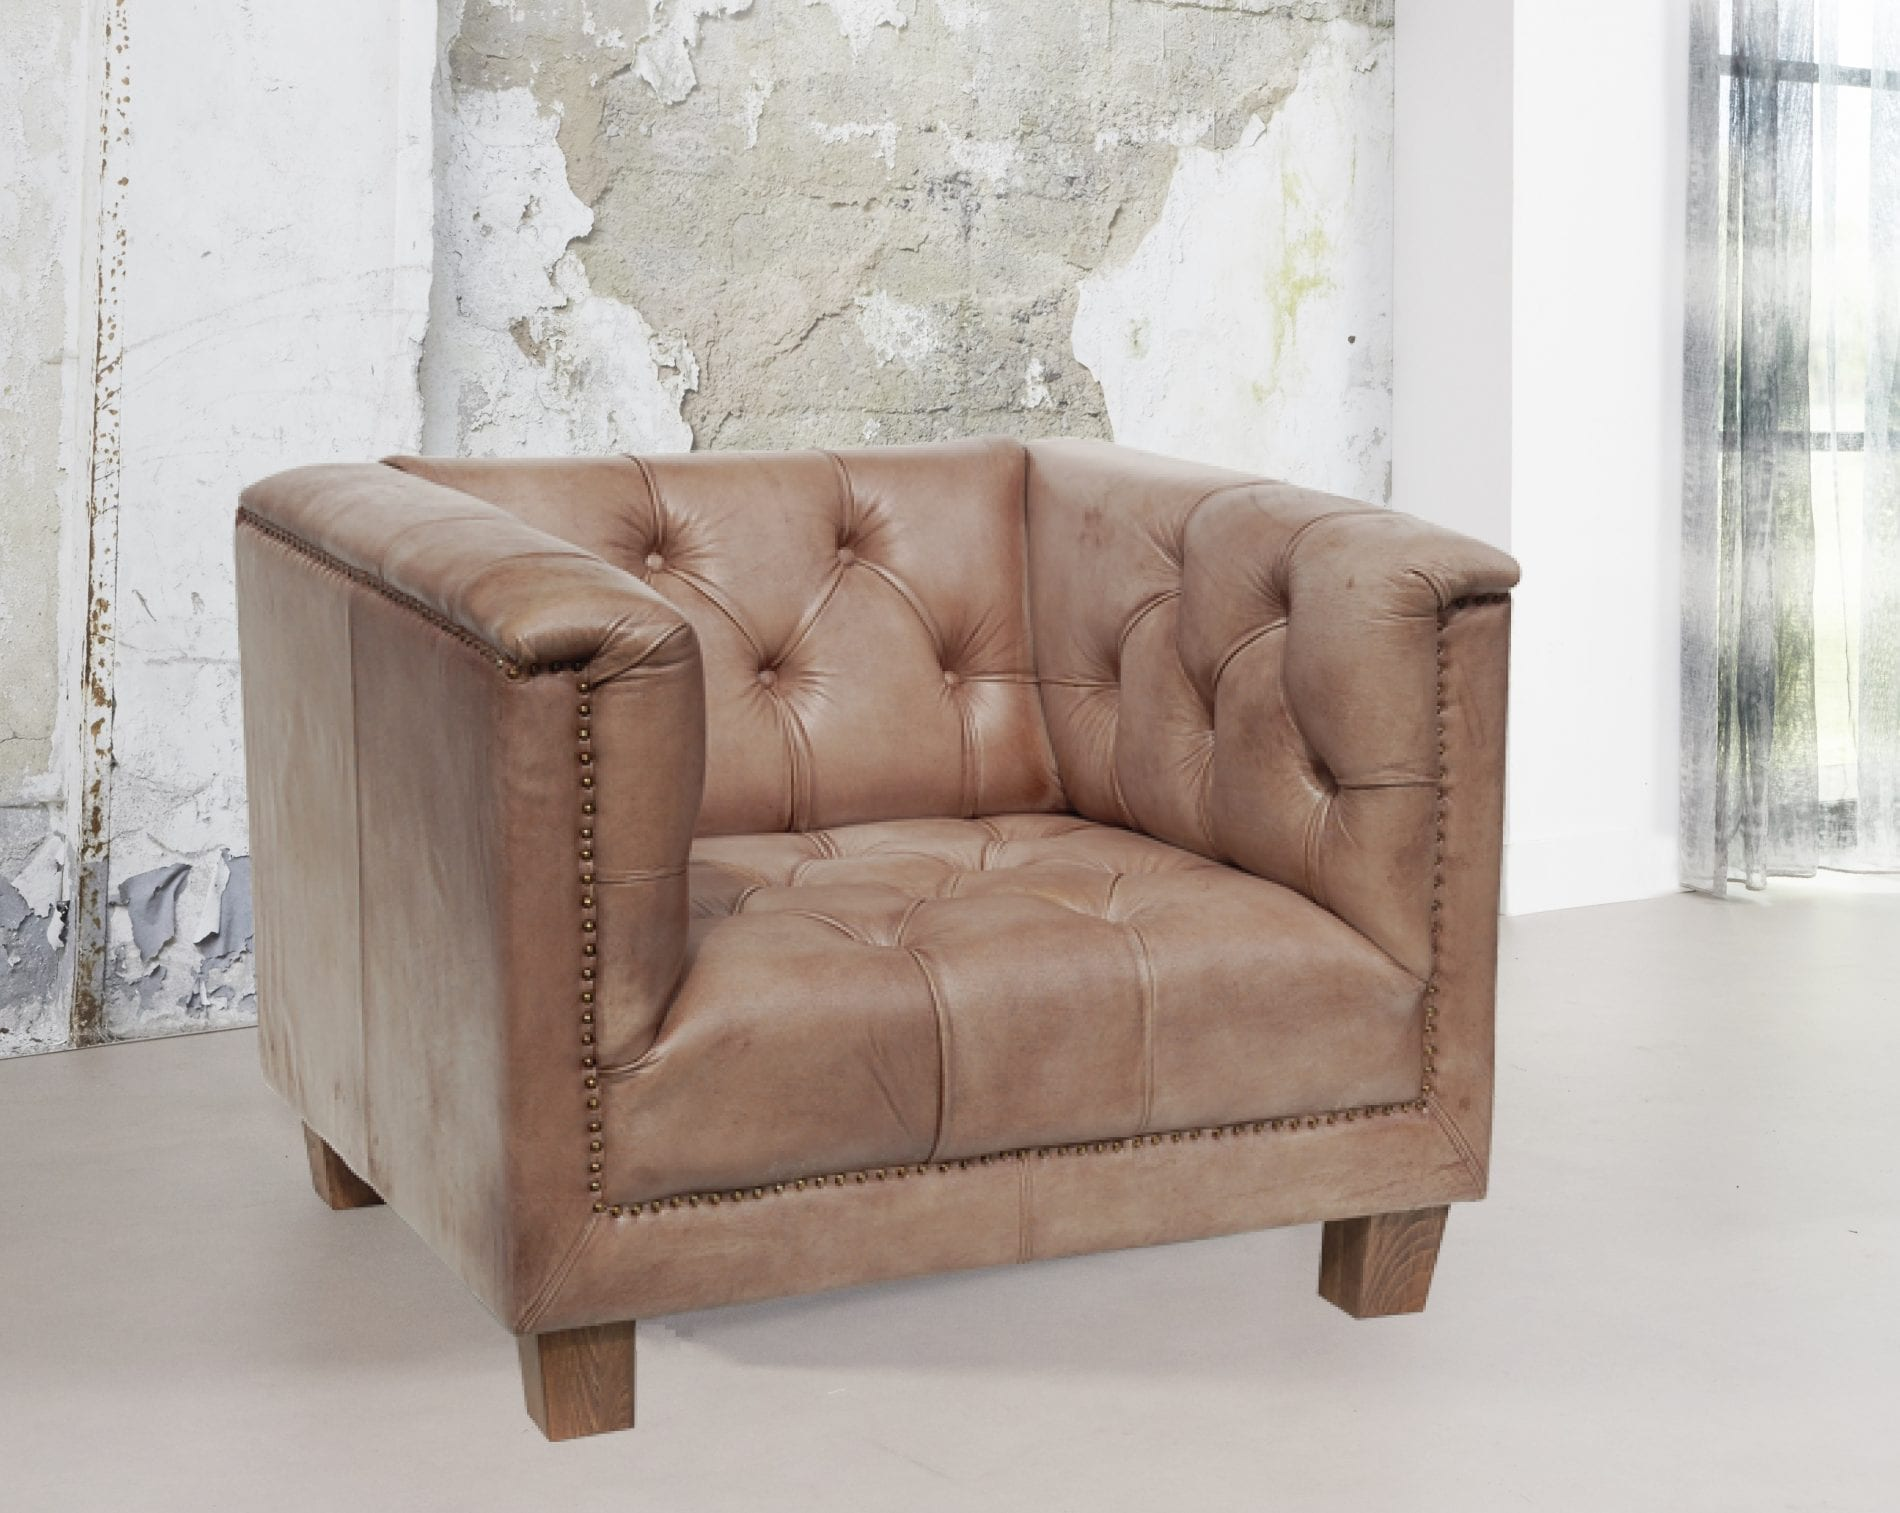 Boston fauteuil betonlook